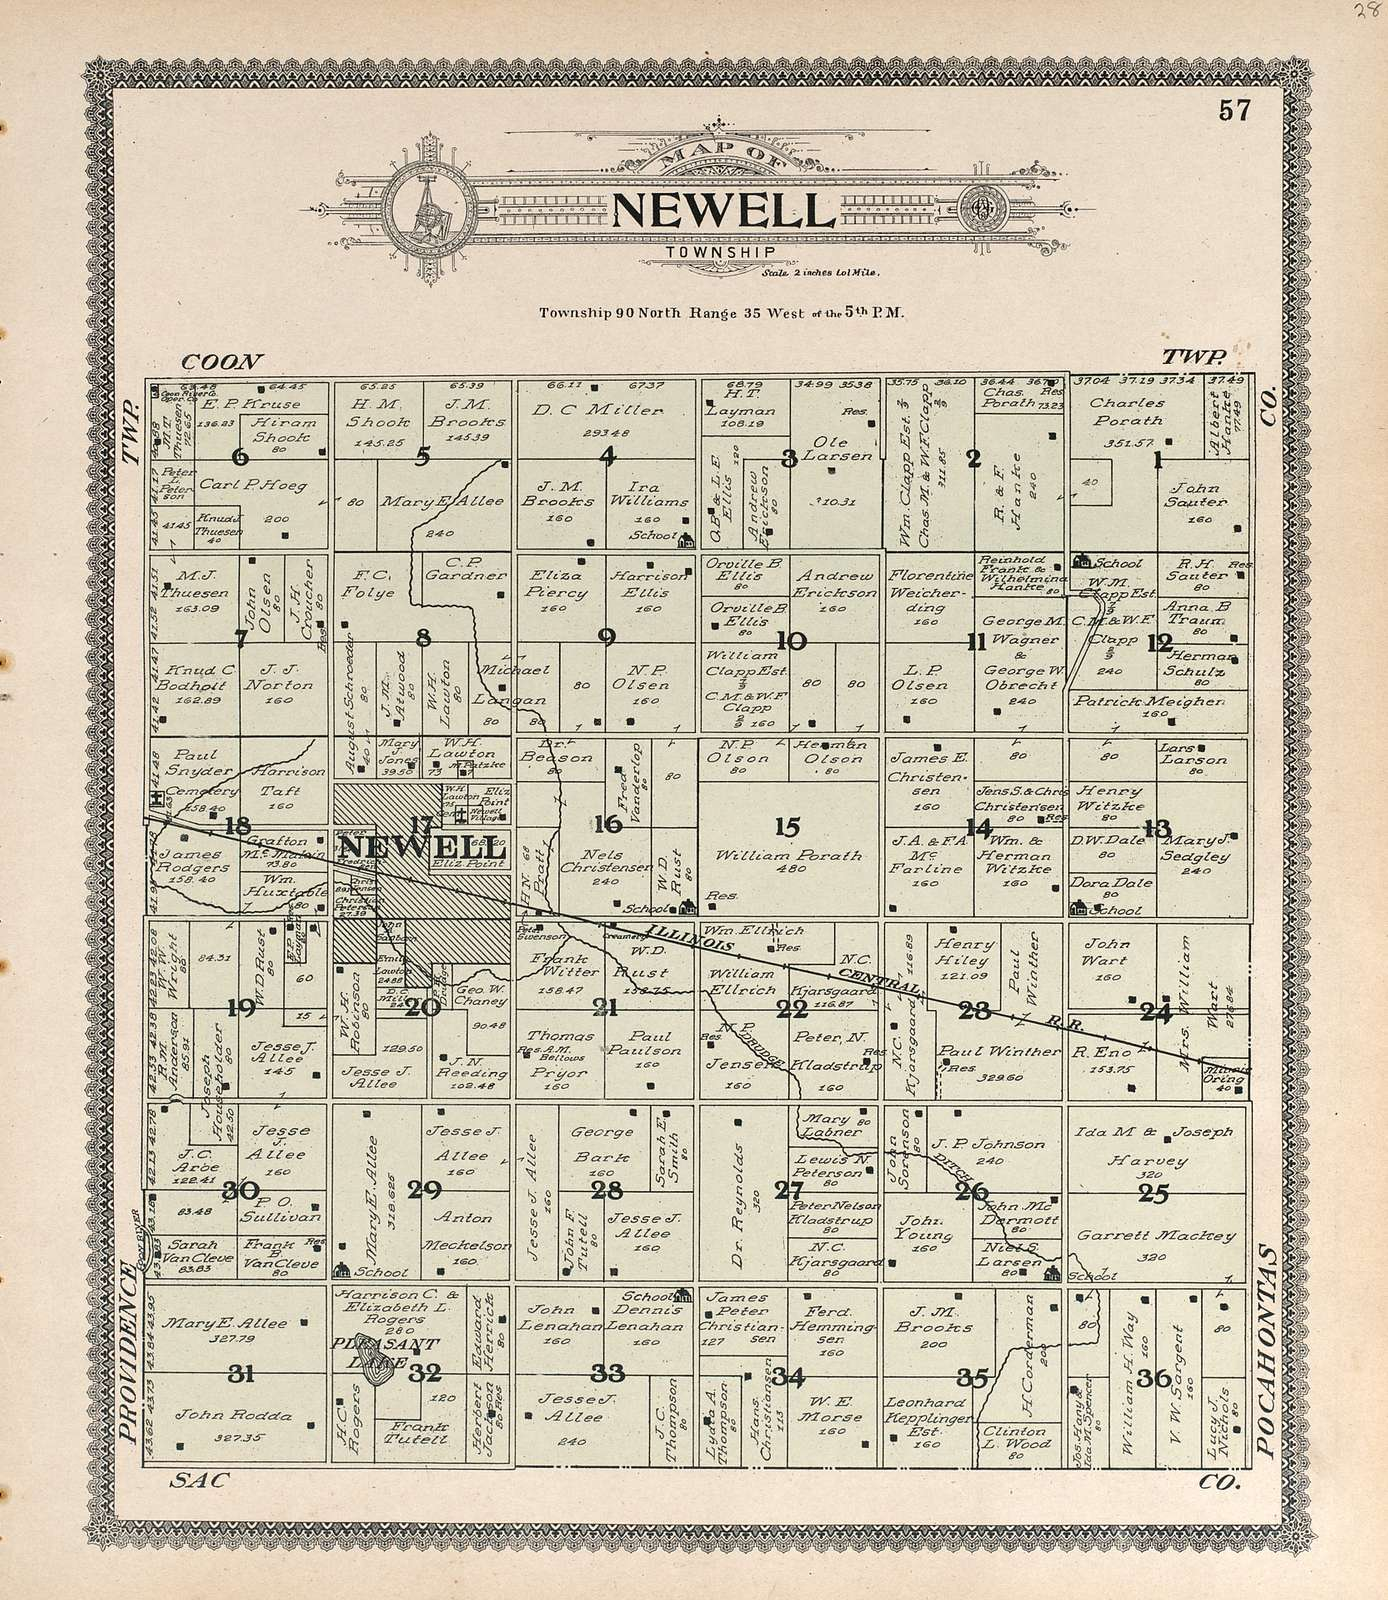 Standard atlas of Buena Vista County, Iowa : including a plat book of the villages, cities and townships of the county, map of the state, United States and world, patrons directory, reference business directory and departments devoted to general information, analysis of the system of U.S. land surveys, digest of the system of civil government, etc. etc. /